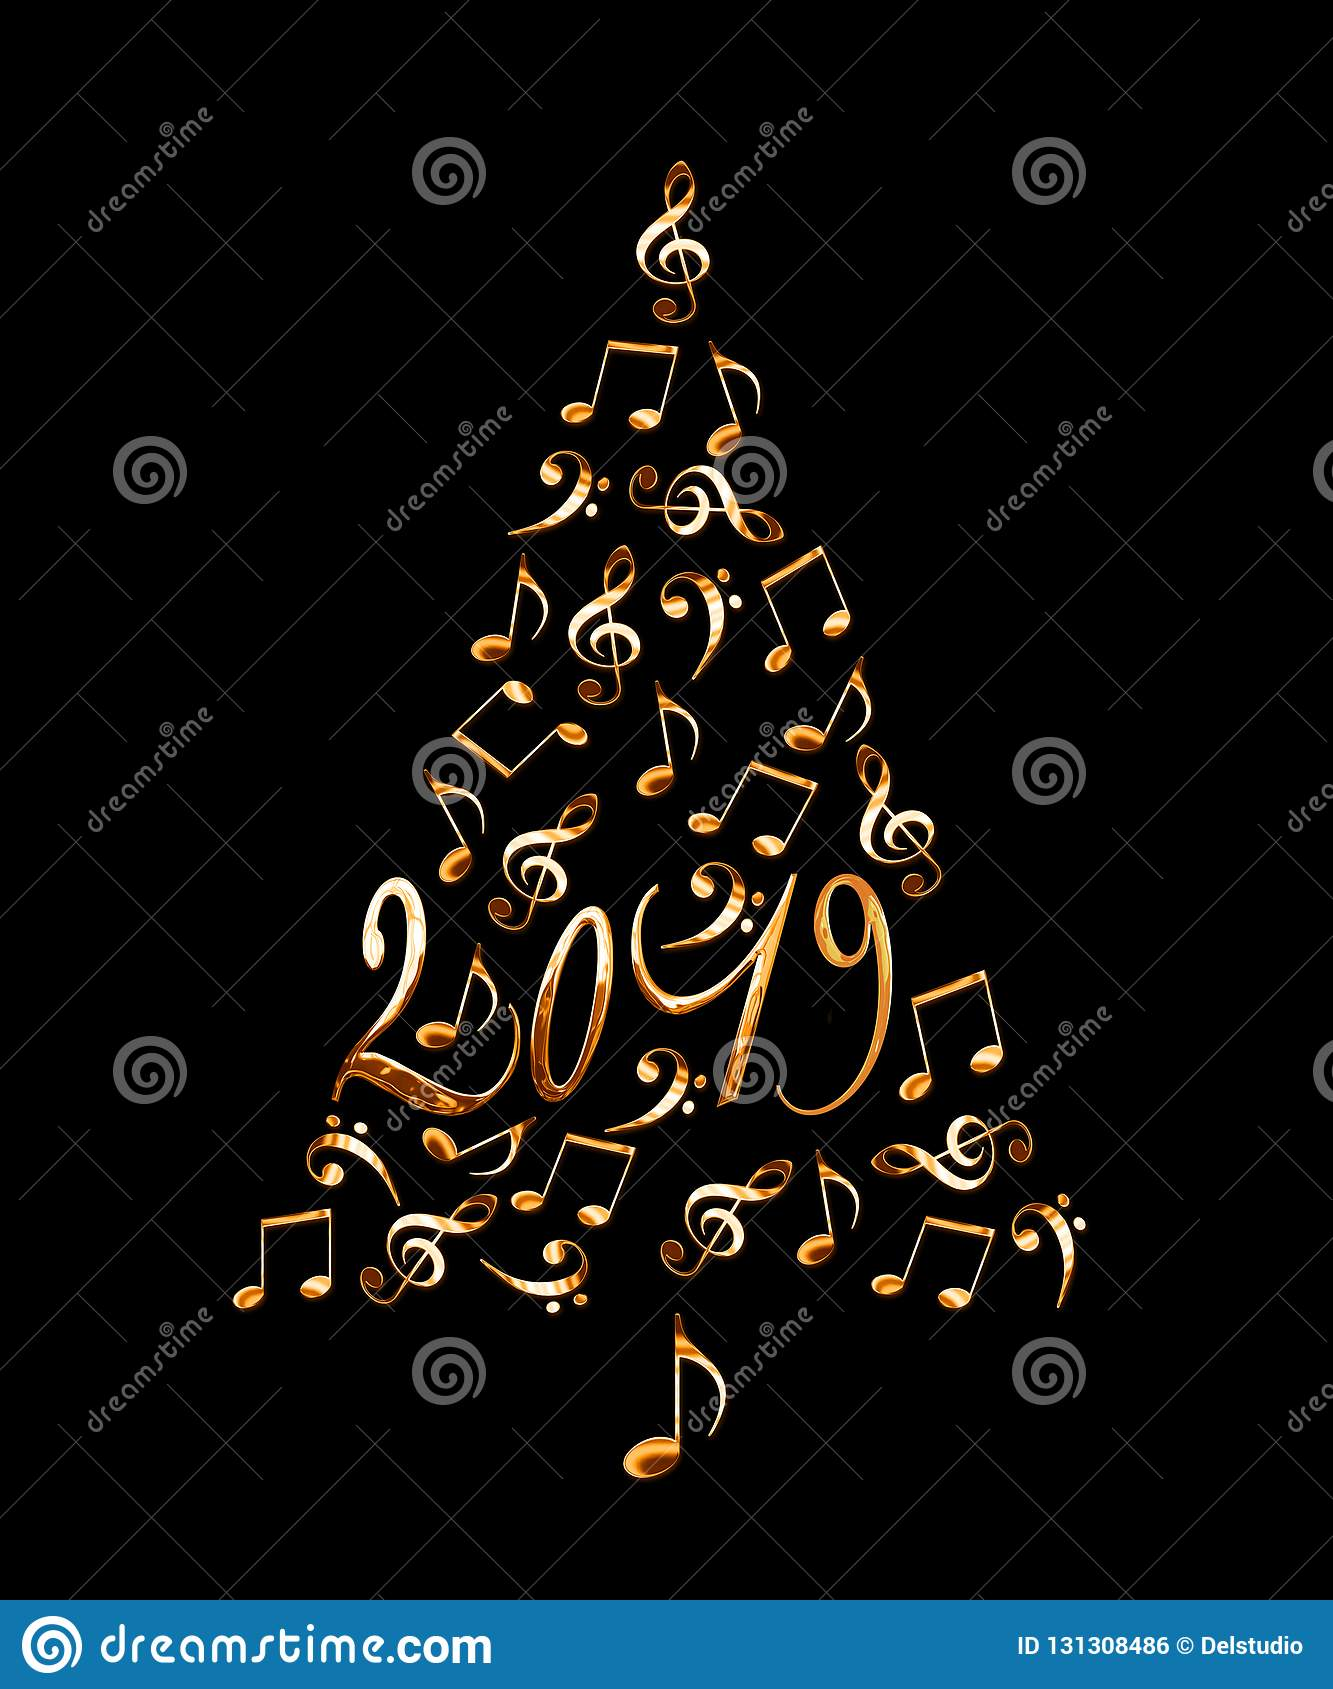 Christmas Musicals 2019 2019 Christmas Tree With Golden Metal Musical Notes Isolated On